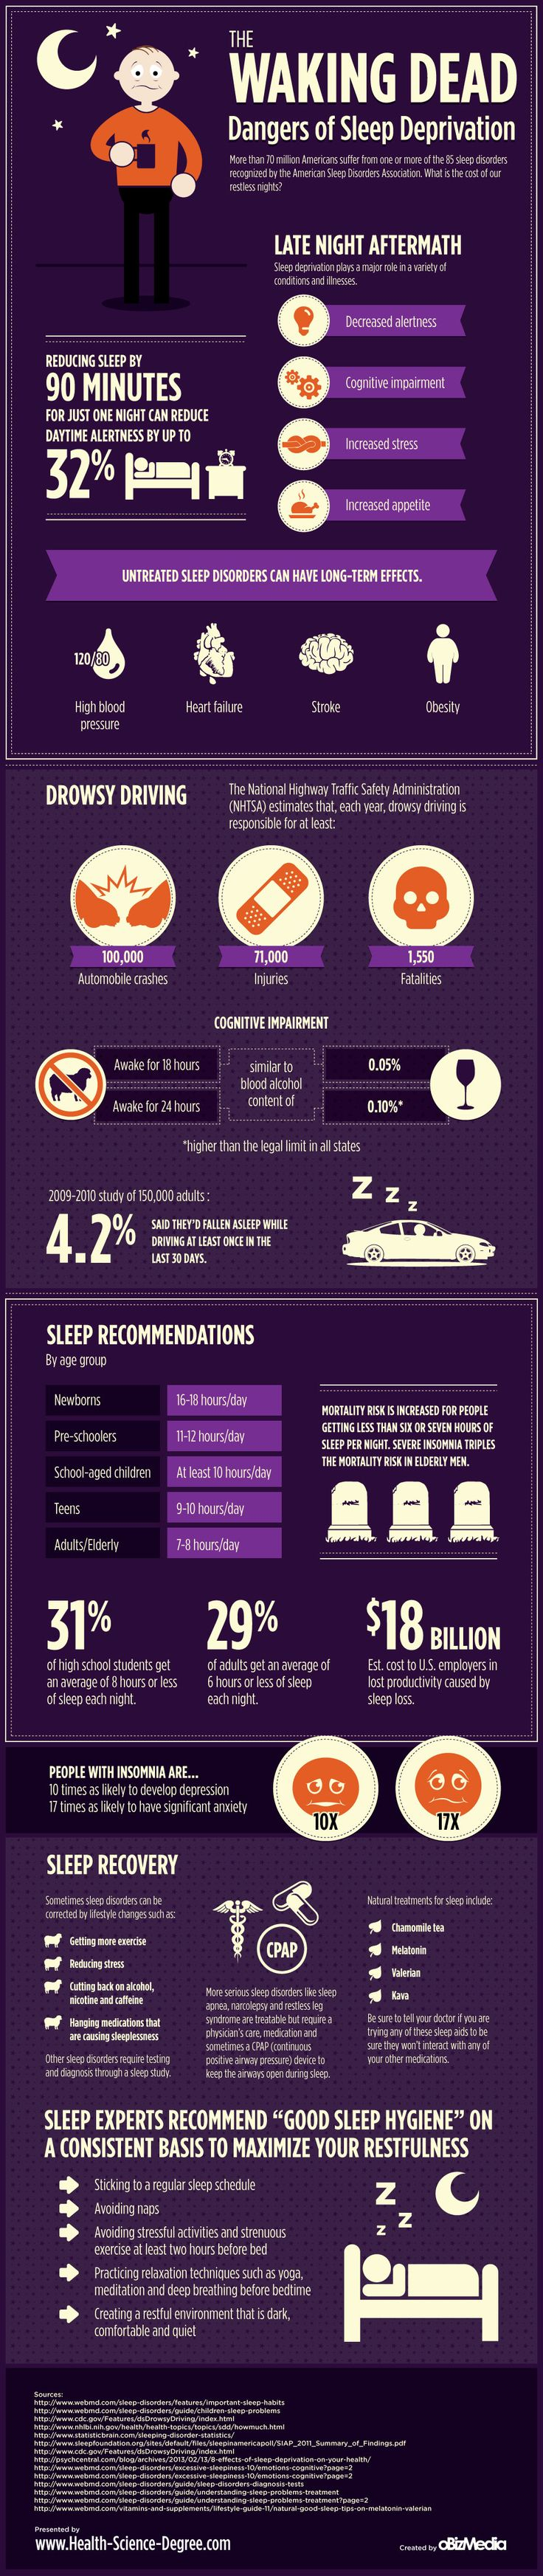 Who knew sleep deprivation could cause so many negative consequences?! This is a great diagram to read.